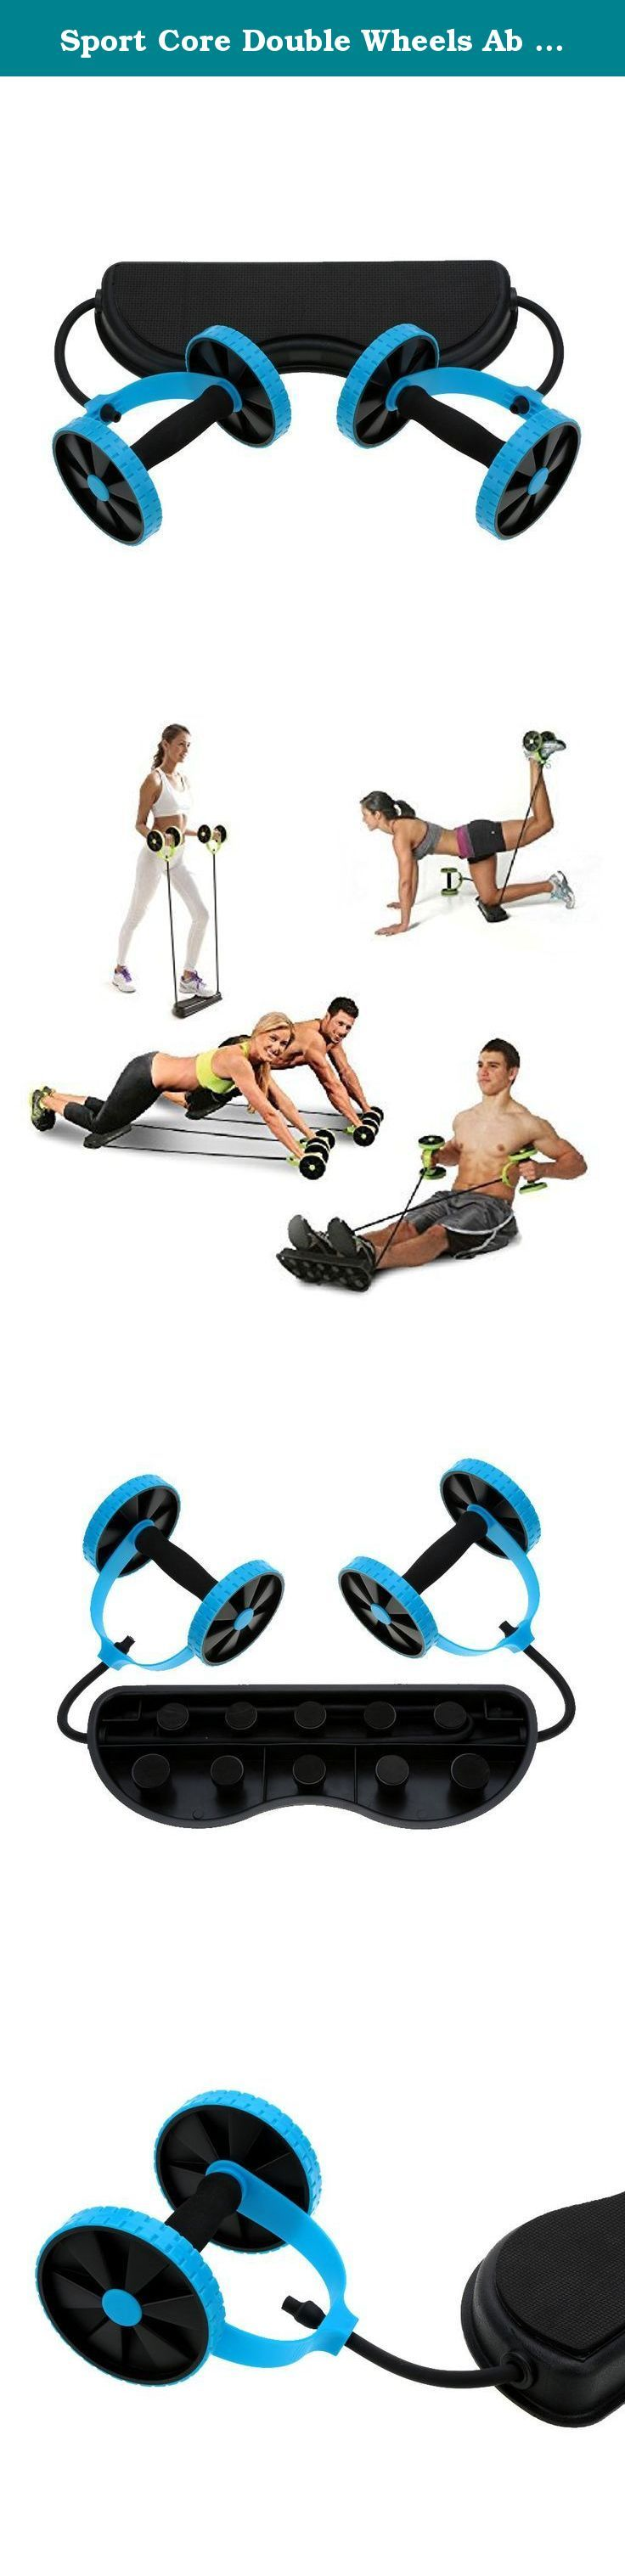 Sport Core Double Wheels Ab Roller Pull Rope Fitness Abdominal Waist Slimming Abdominal Exercise Equipment Blue. Home Exercise Equipment Core Double Wheels Ab Roller Pull Rope Abdominal Waist Slimming Trainer Works every major upper body muscle group and your abdomen Strengthens abs, shoulders, arms, back,waist, leg and so on. The ab wheel works every upper body muscle group, including shoulders, arms, back, waist and abdomen. It can be used at home, in the office or other outdoor space…